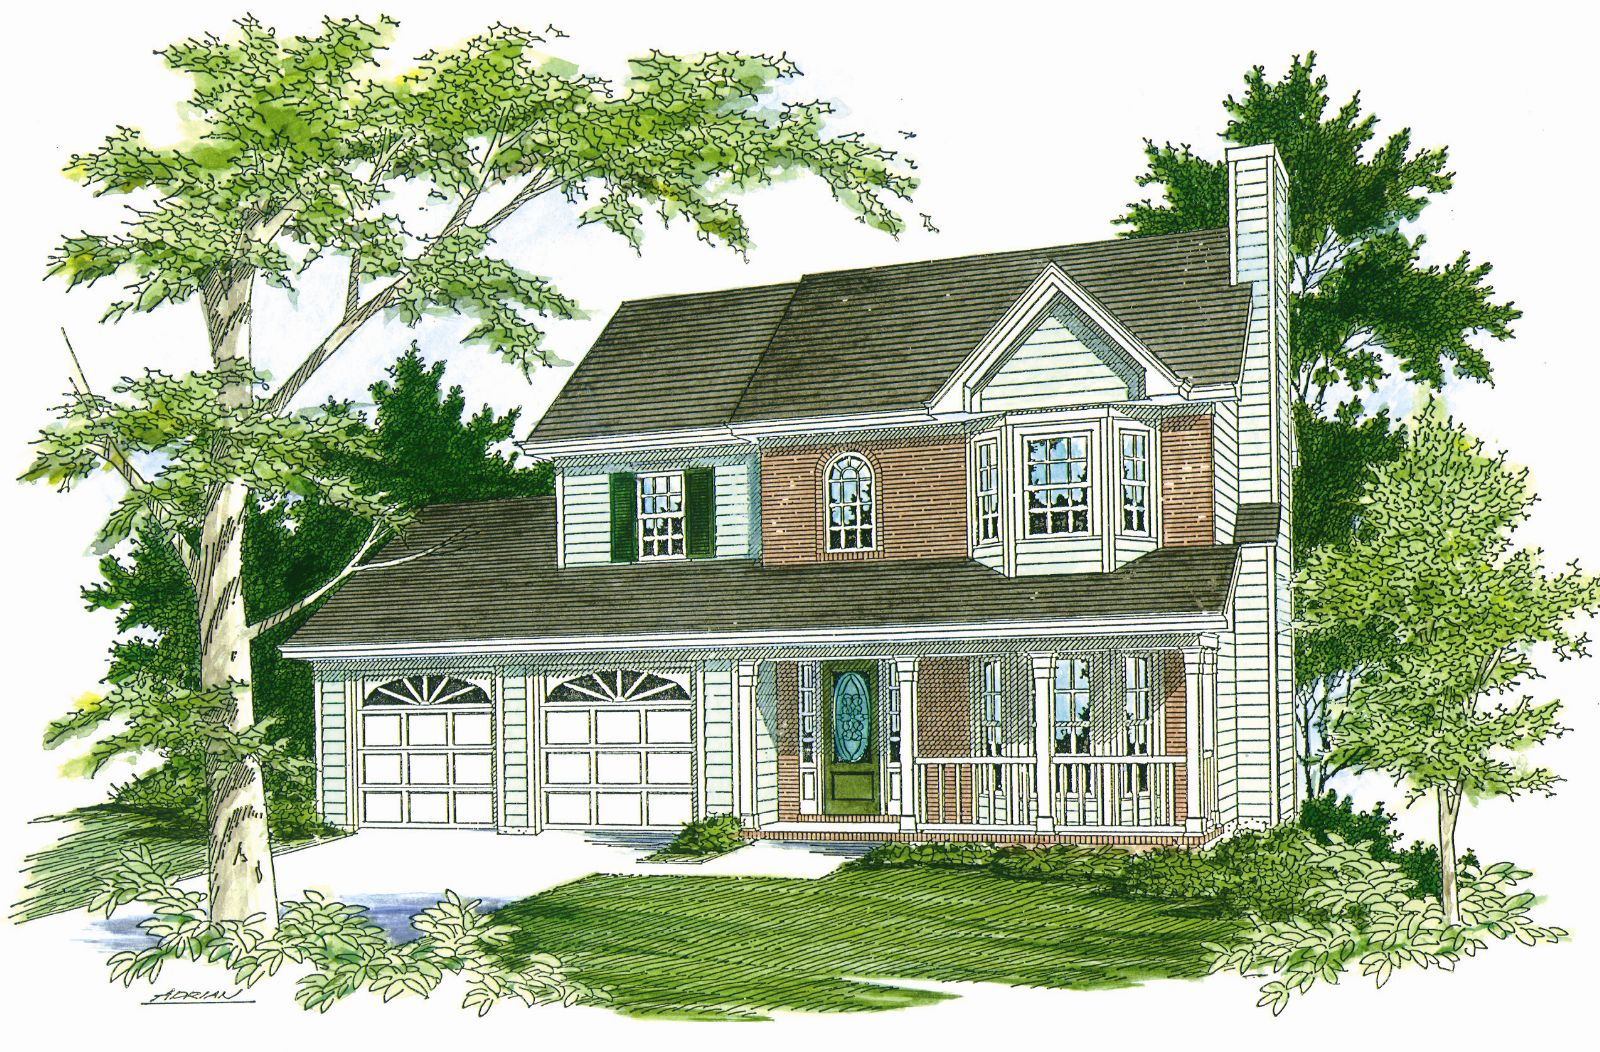 House plans with cost estimates to build house plan cost for Cost to build estimator